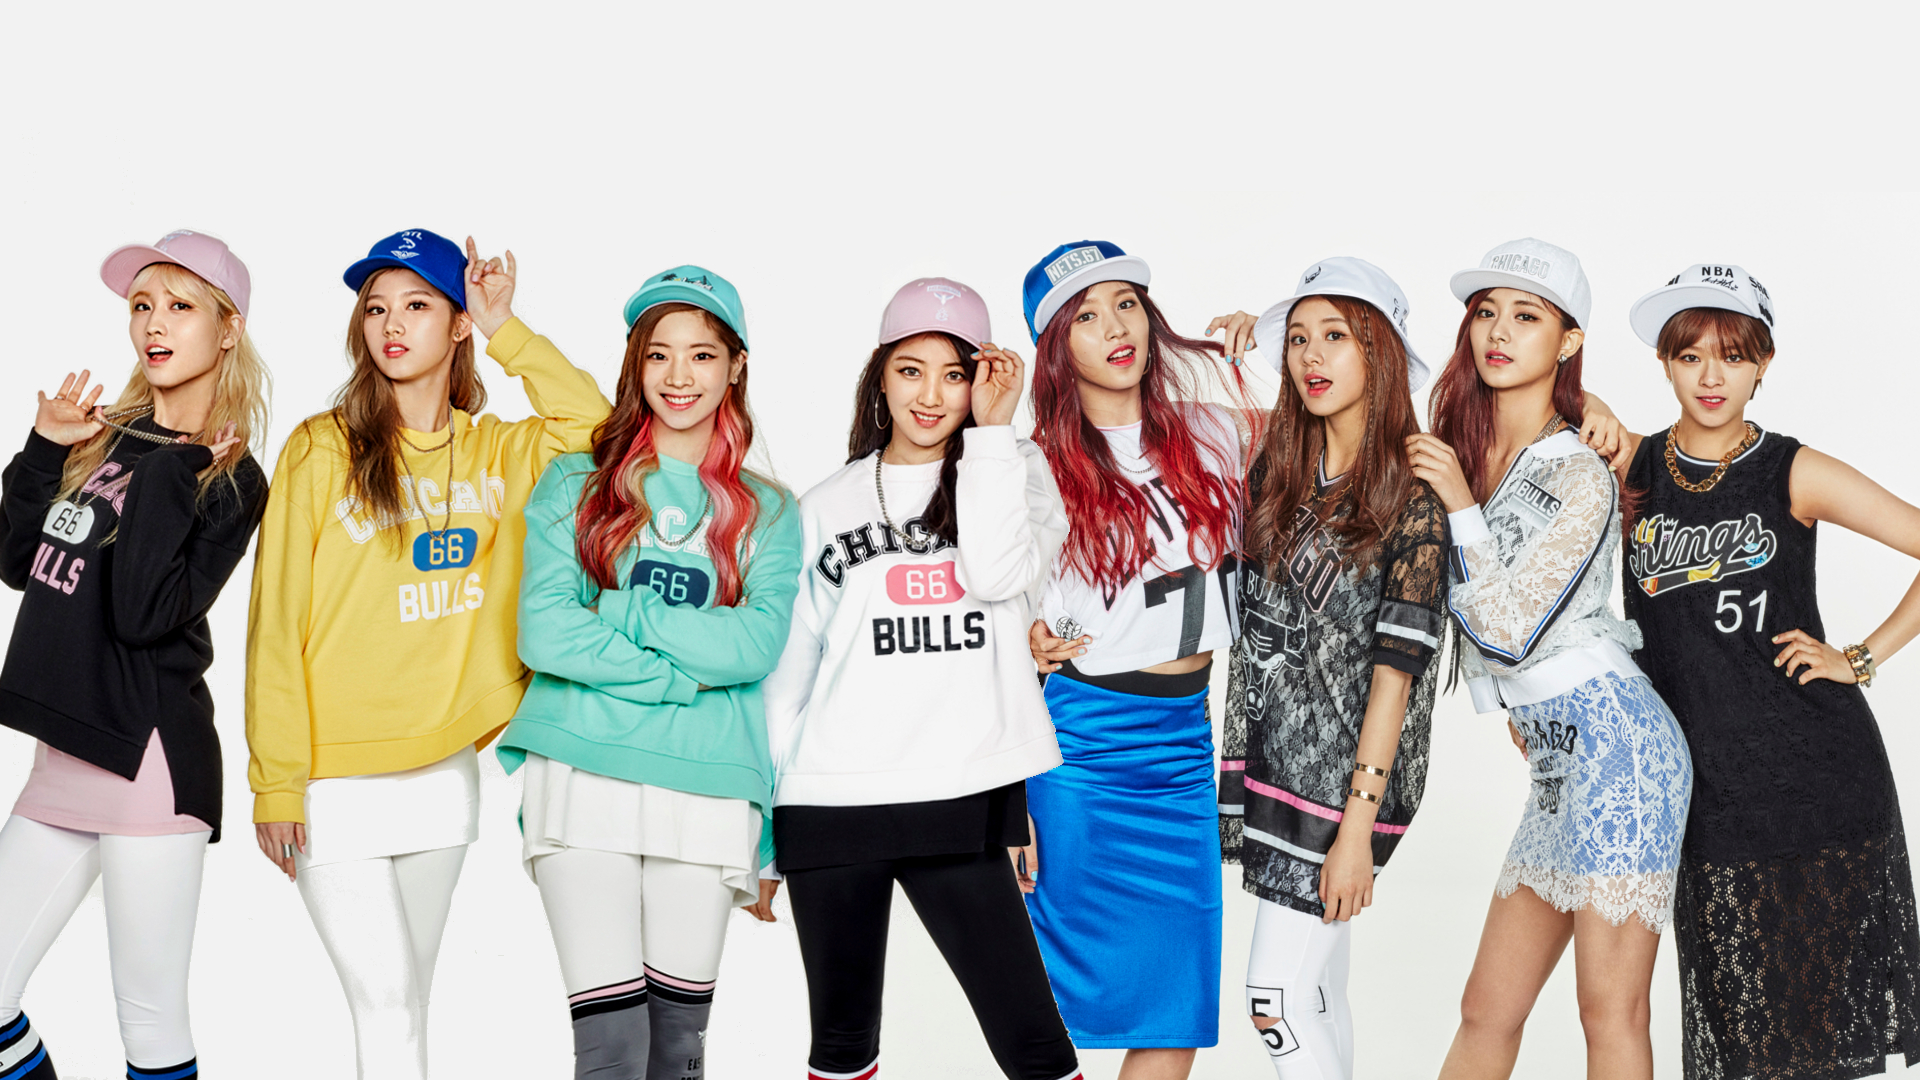 Twice Jyp Ent Images Twice Hd Wallpaper And Background - Twice And Got7 Photoshoot , HD Wallpaper & Backgrounds